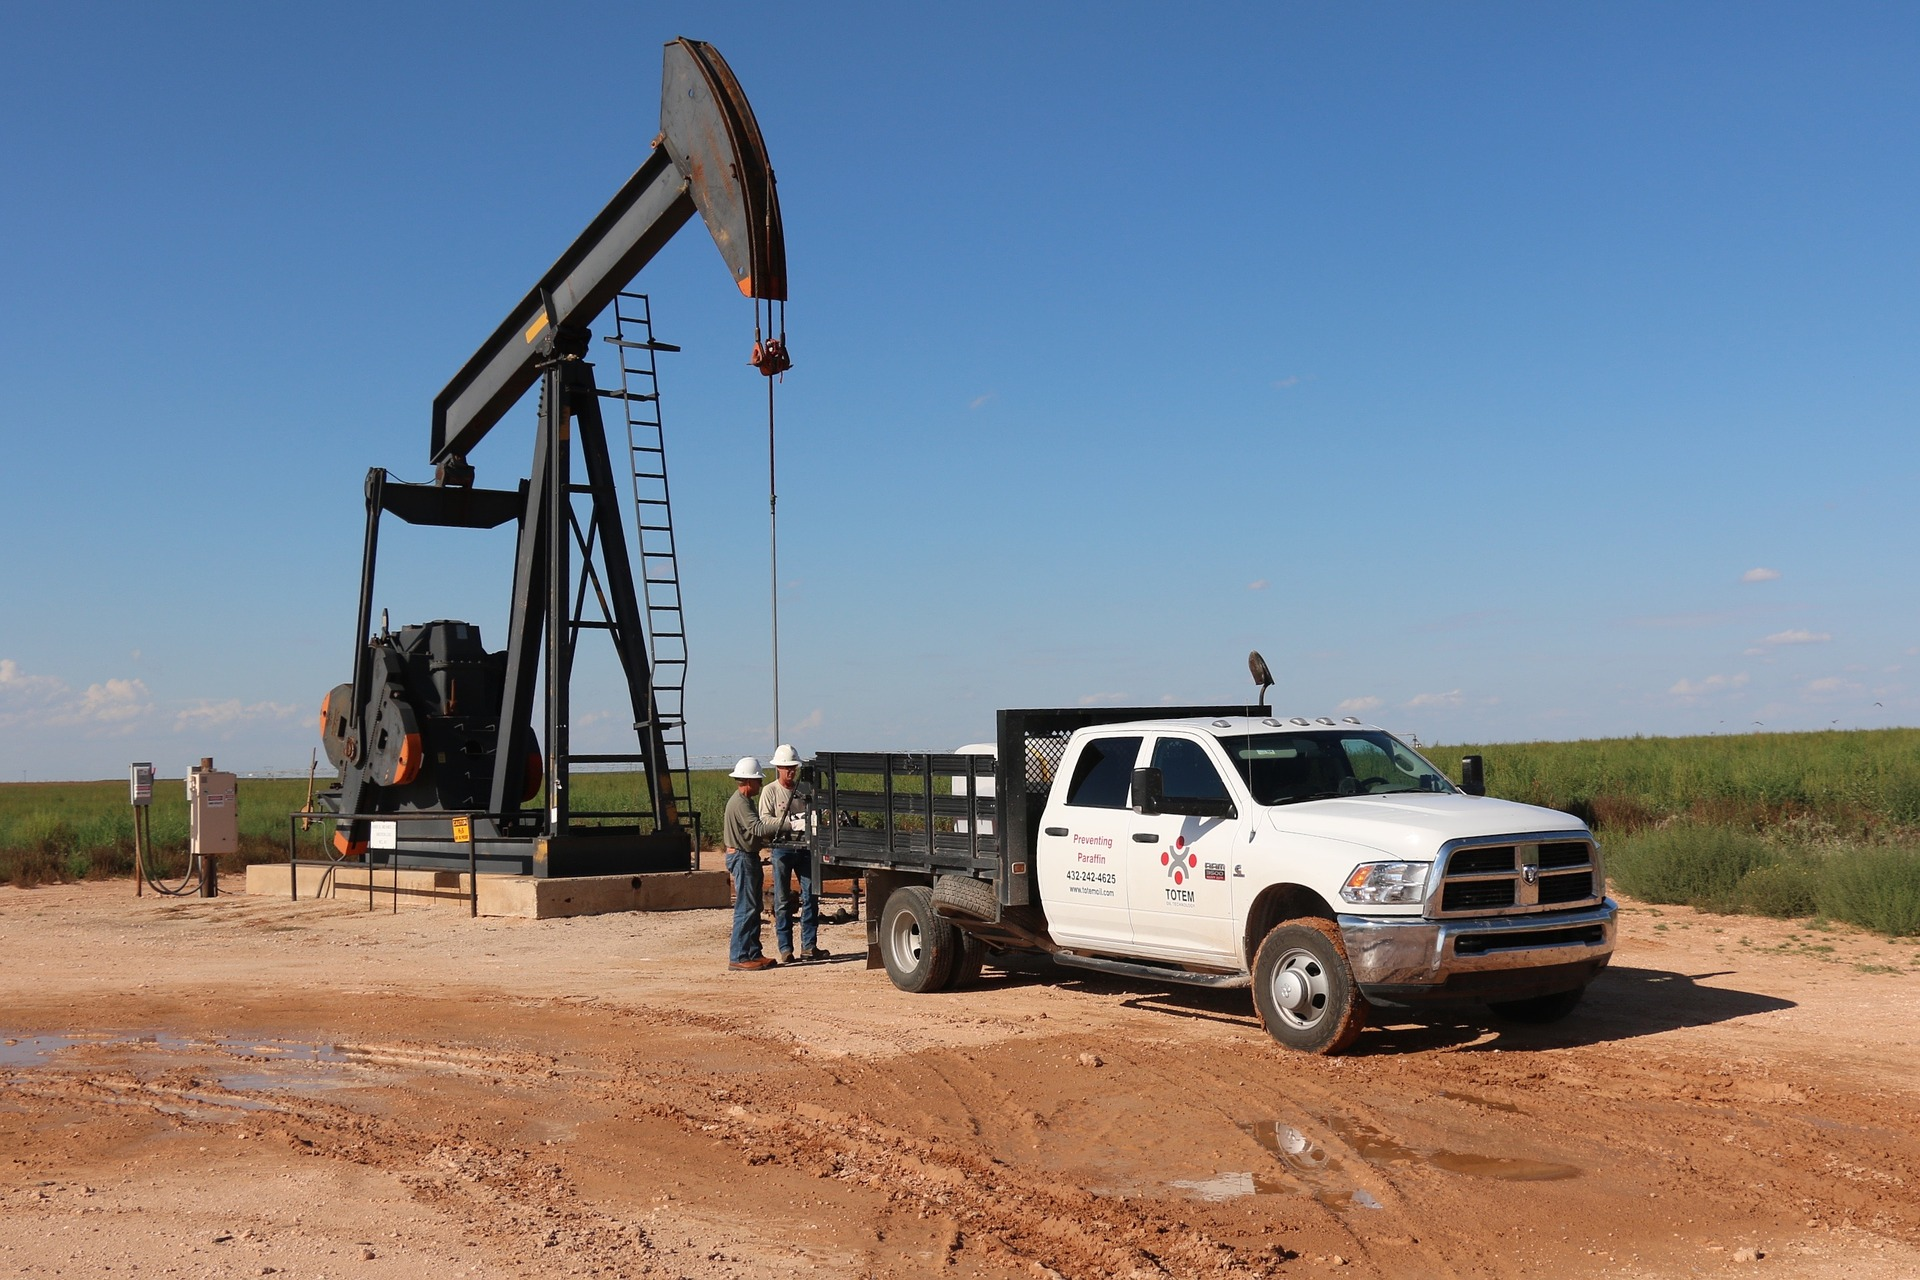 oil well in a field